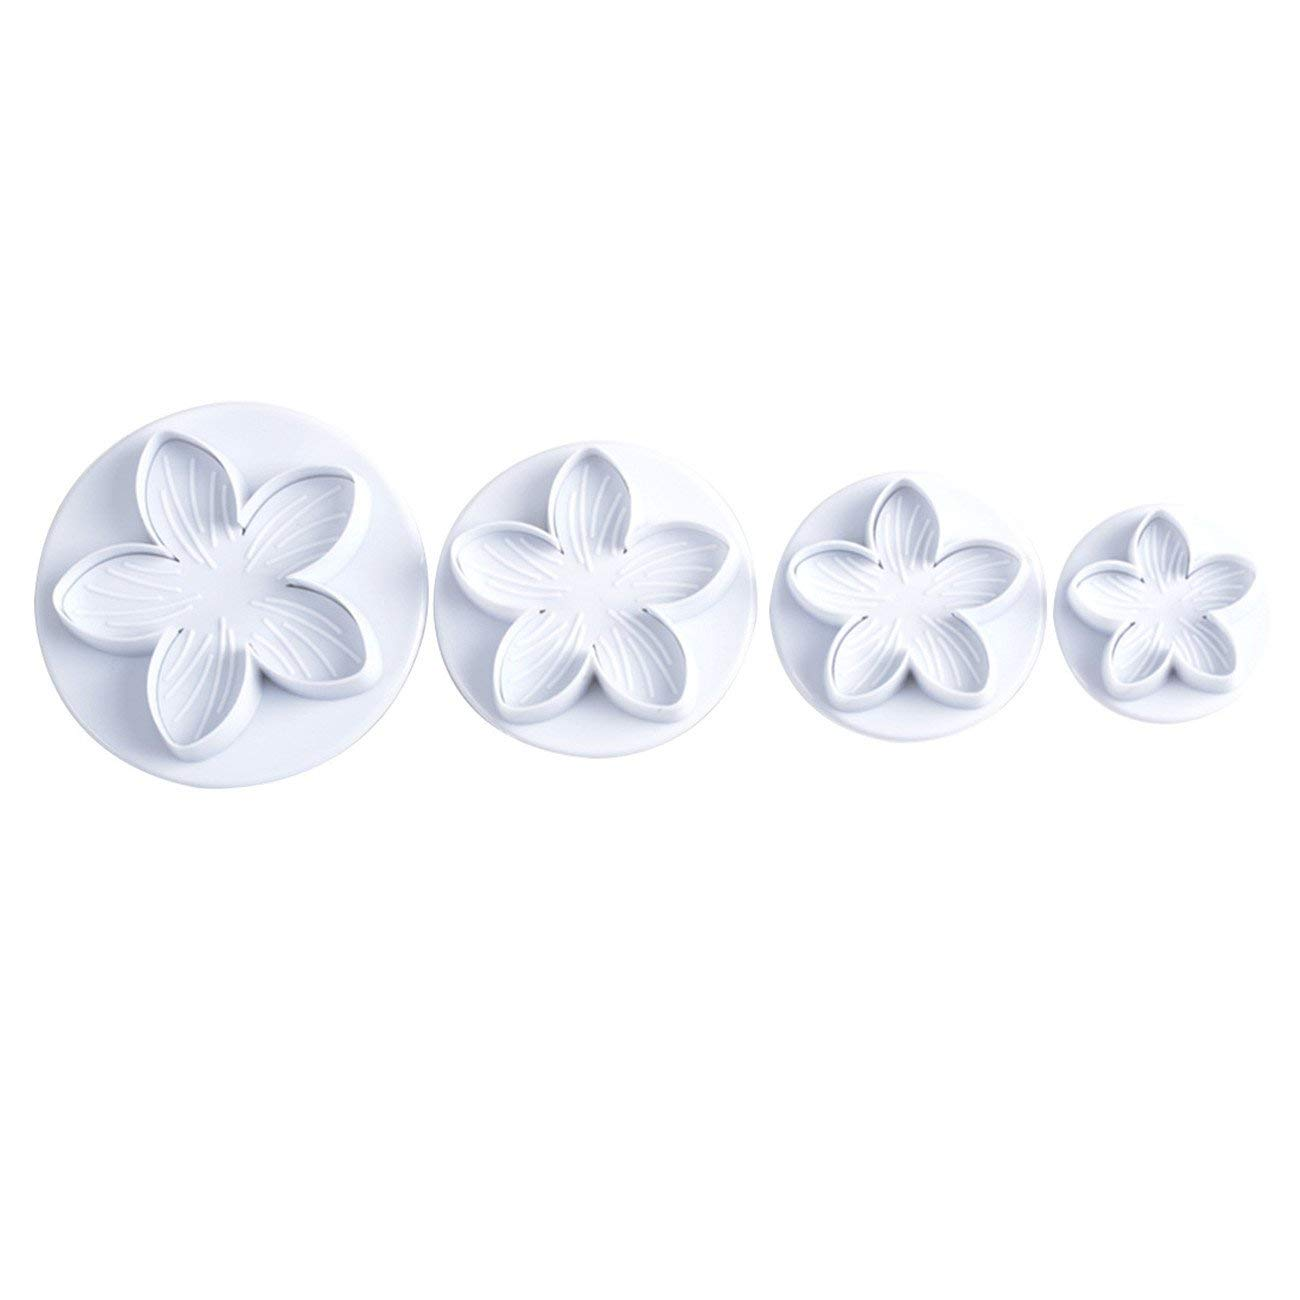 Cheap Cup Cake Cutters Find Cup Cake Cutters Deals On Line At